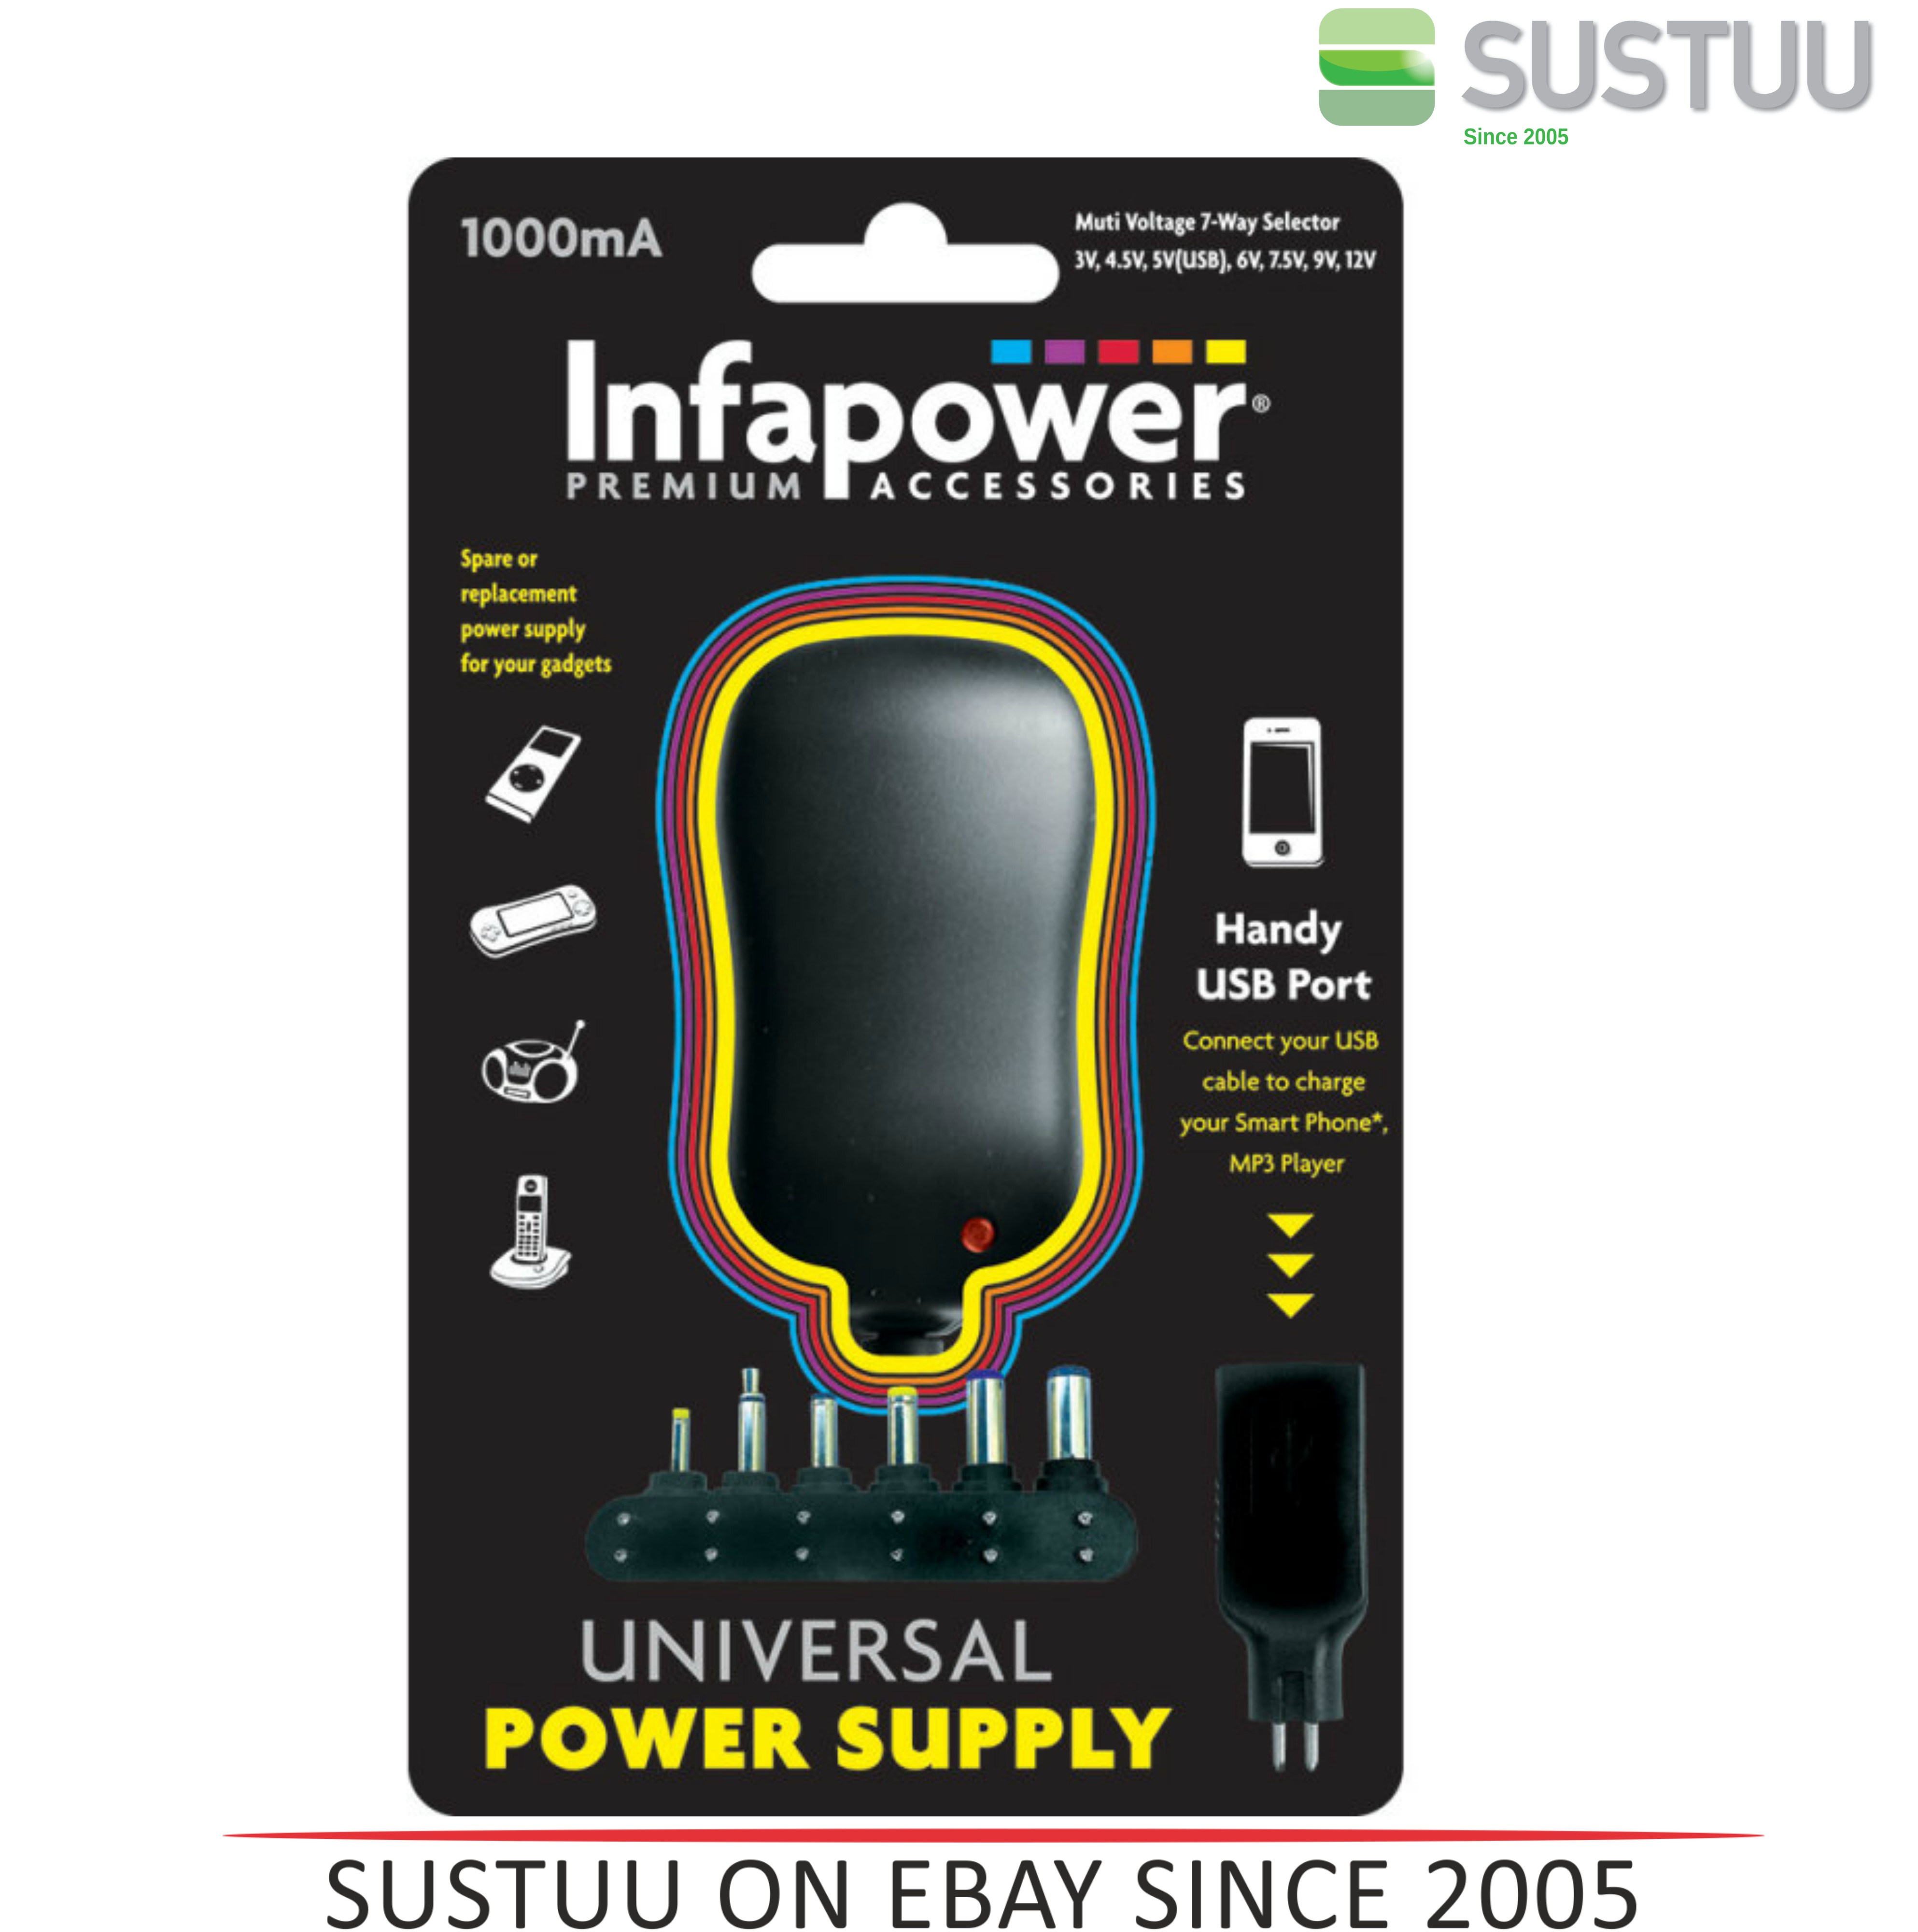 Infapower 1000mA 7-Way Universal Power Supply AC/DC Adaptor for Gadgets - P002